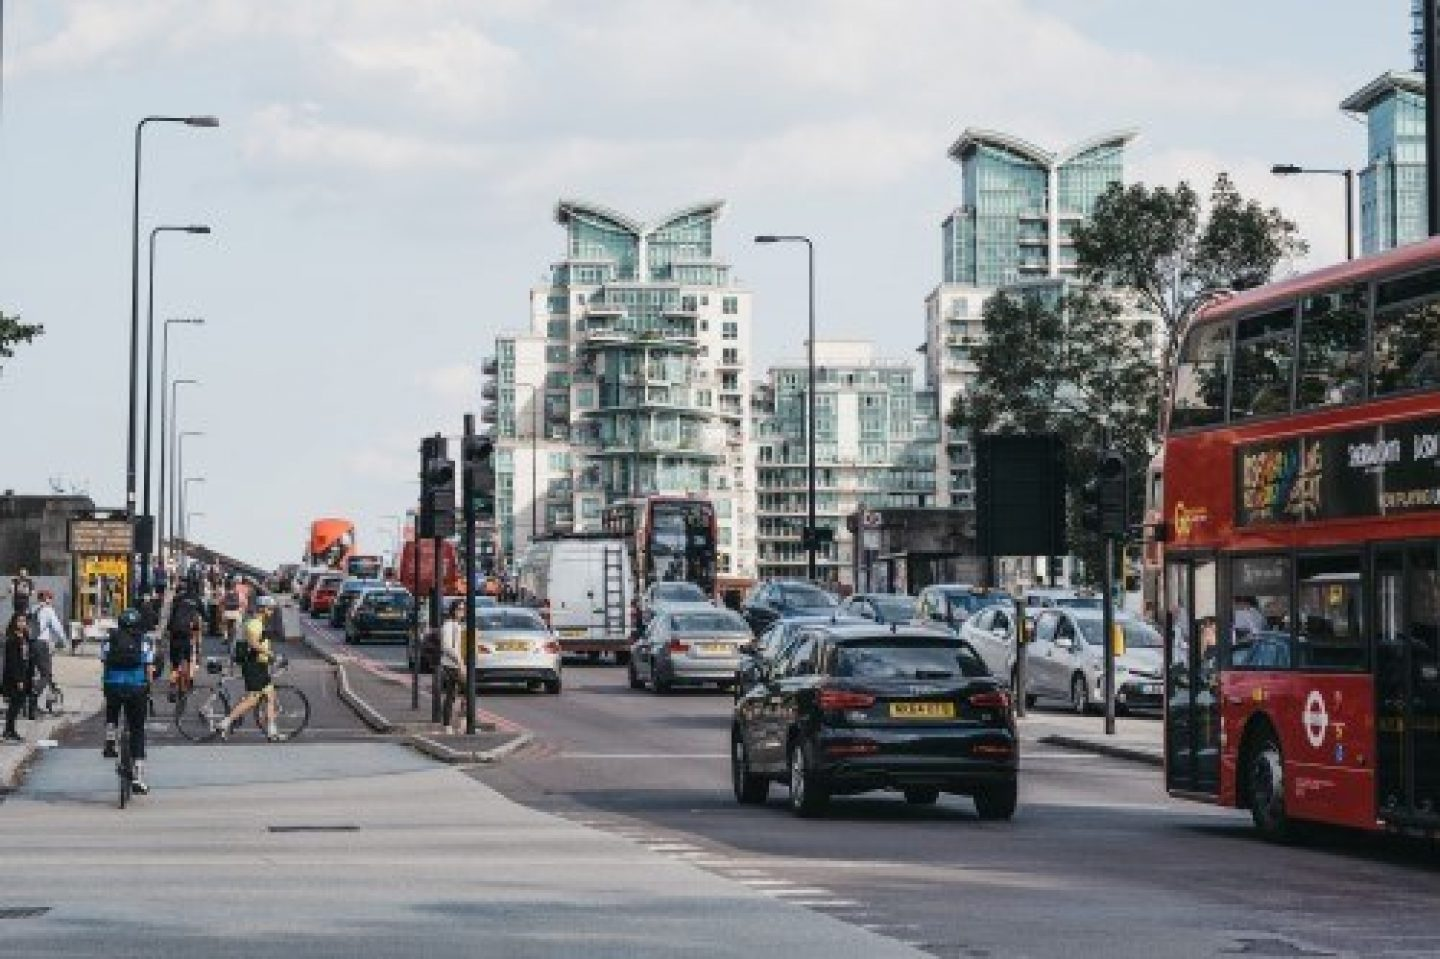 London cycle superhighway shutterstock 1472185052 2000